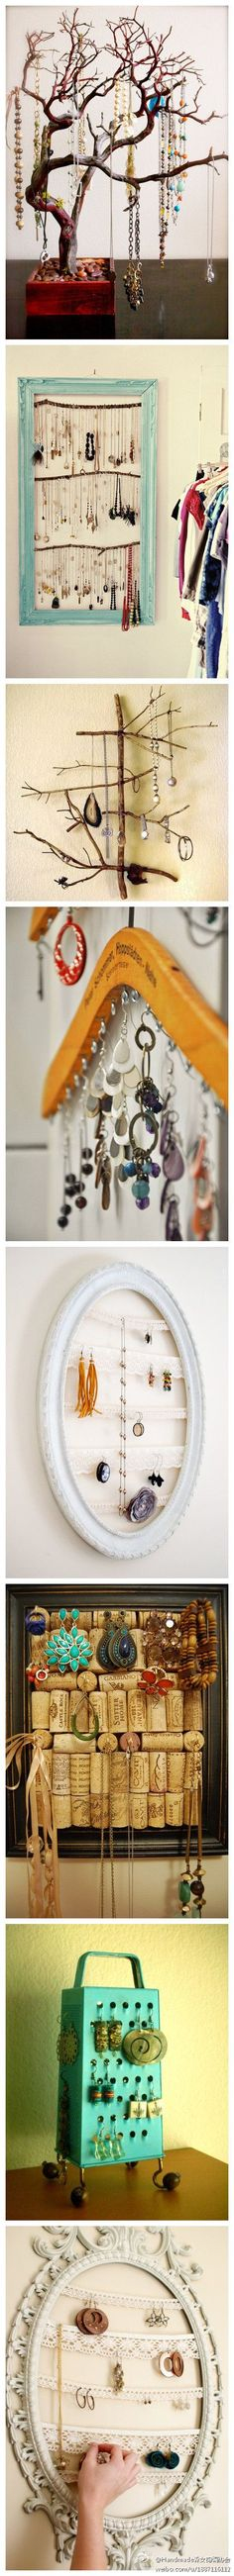 Pretty ways to store jewellery. I love the first picture frame idea!